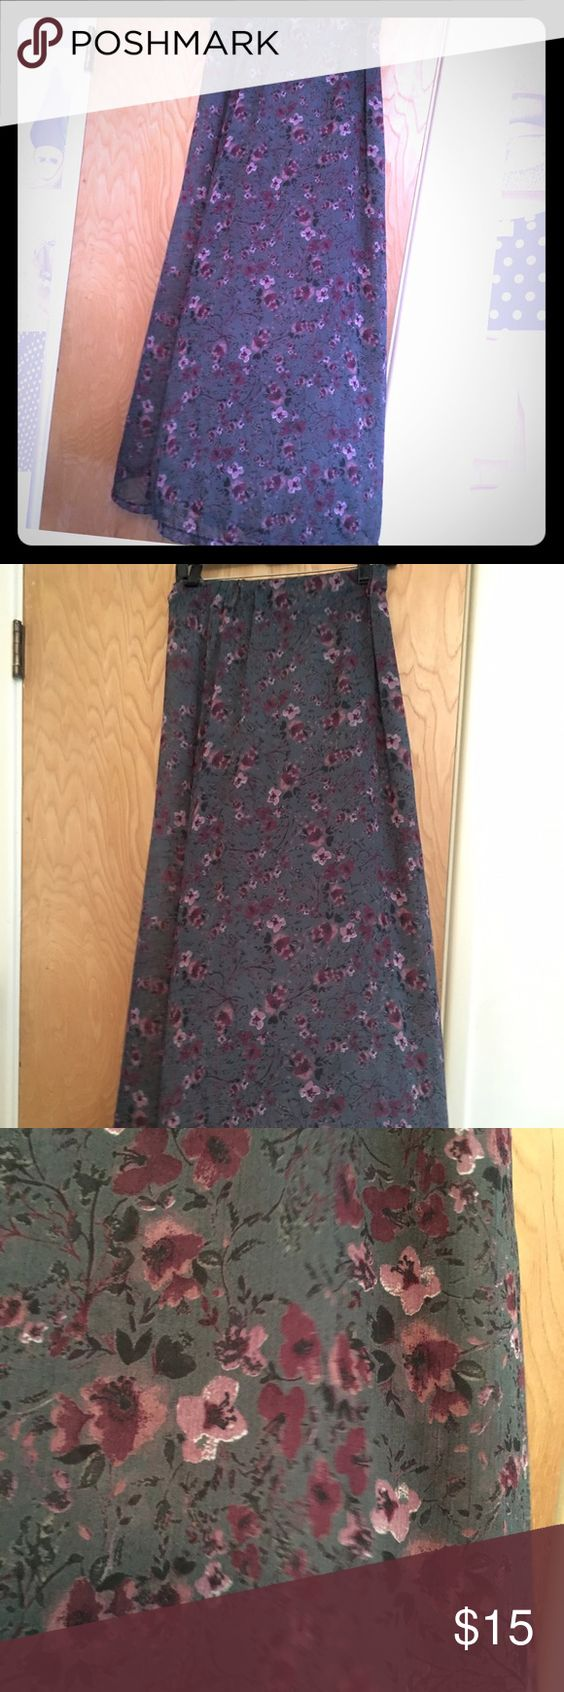 Brandy Melville floral skirt Like new Brandy Melville maxi skirt. Greenish blue background with purple flowers. Brandy Melville Skirts Maxi